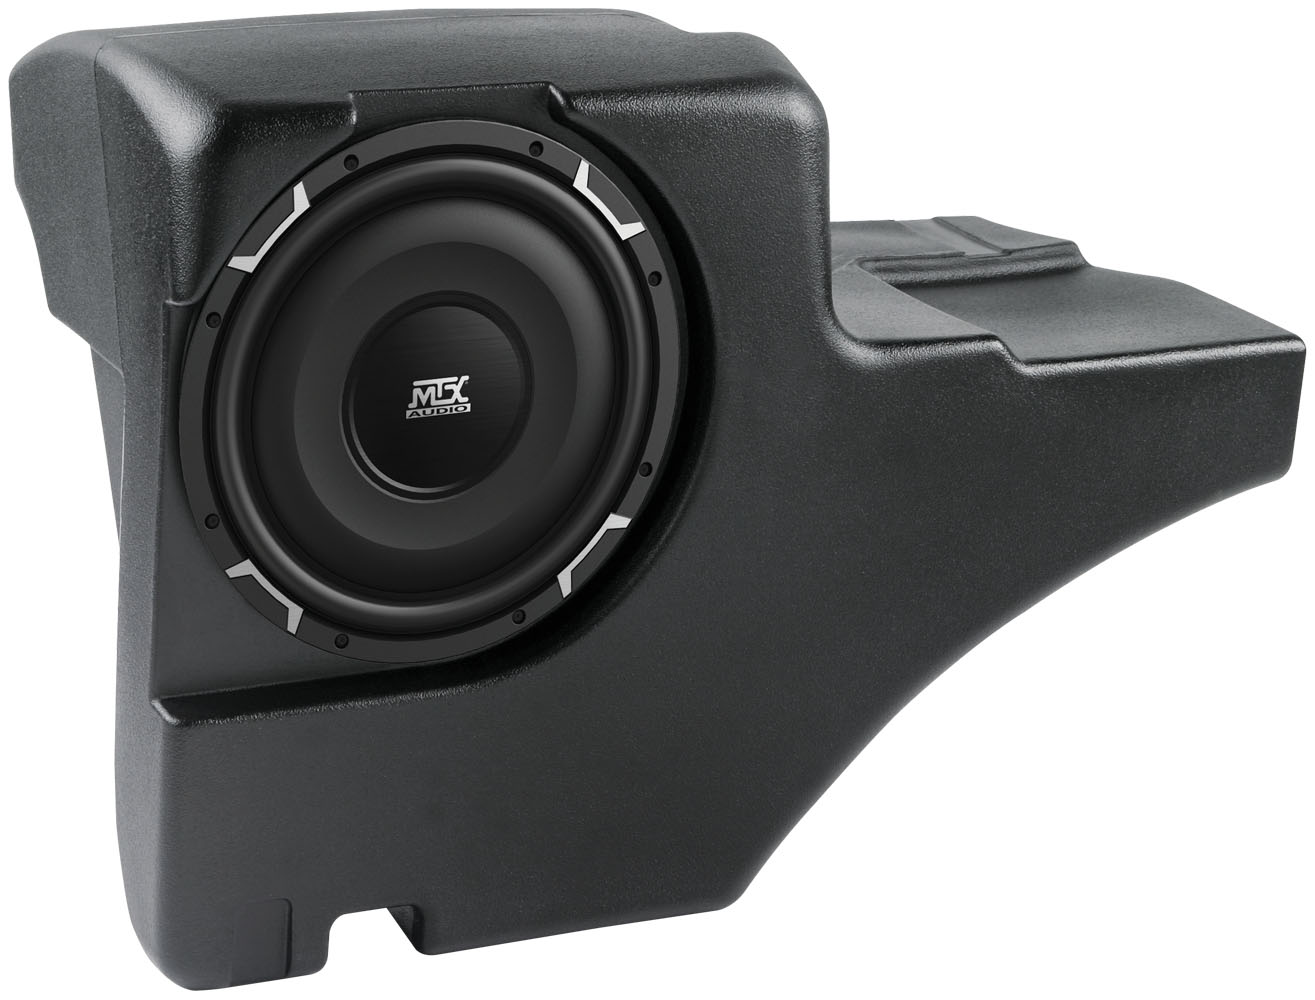 hight resolution of chevrolet tahoe 2001 2006 thunderform custom amplified subwoofer enclosure mtx audio serious about sound